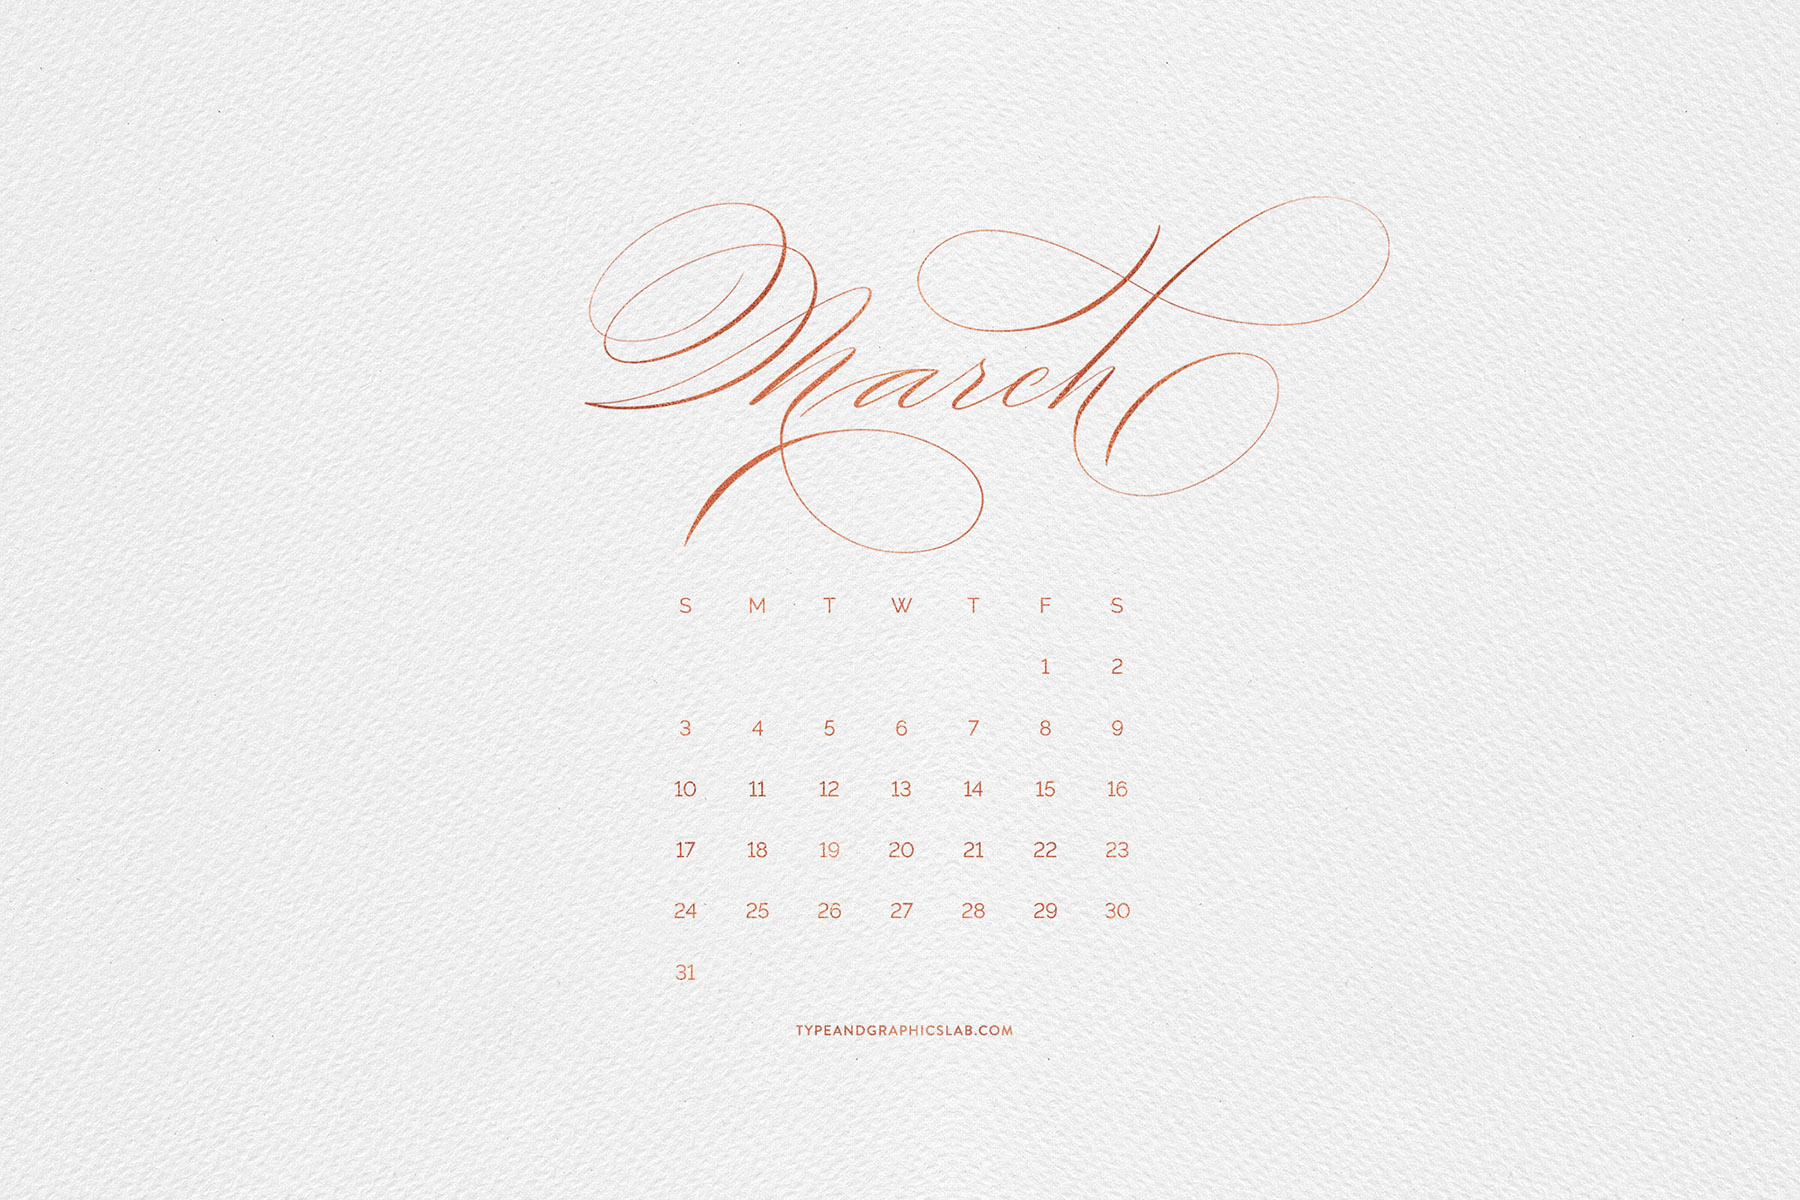 Download free desktop, mobile, and printable calendar for March 2019 | © typeandgraphicslab.com | For personal use only